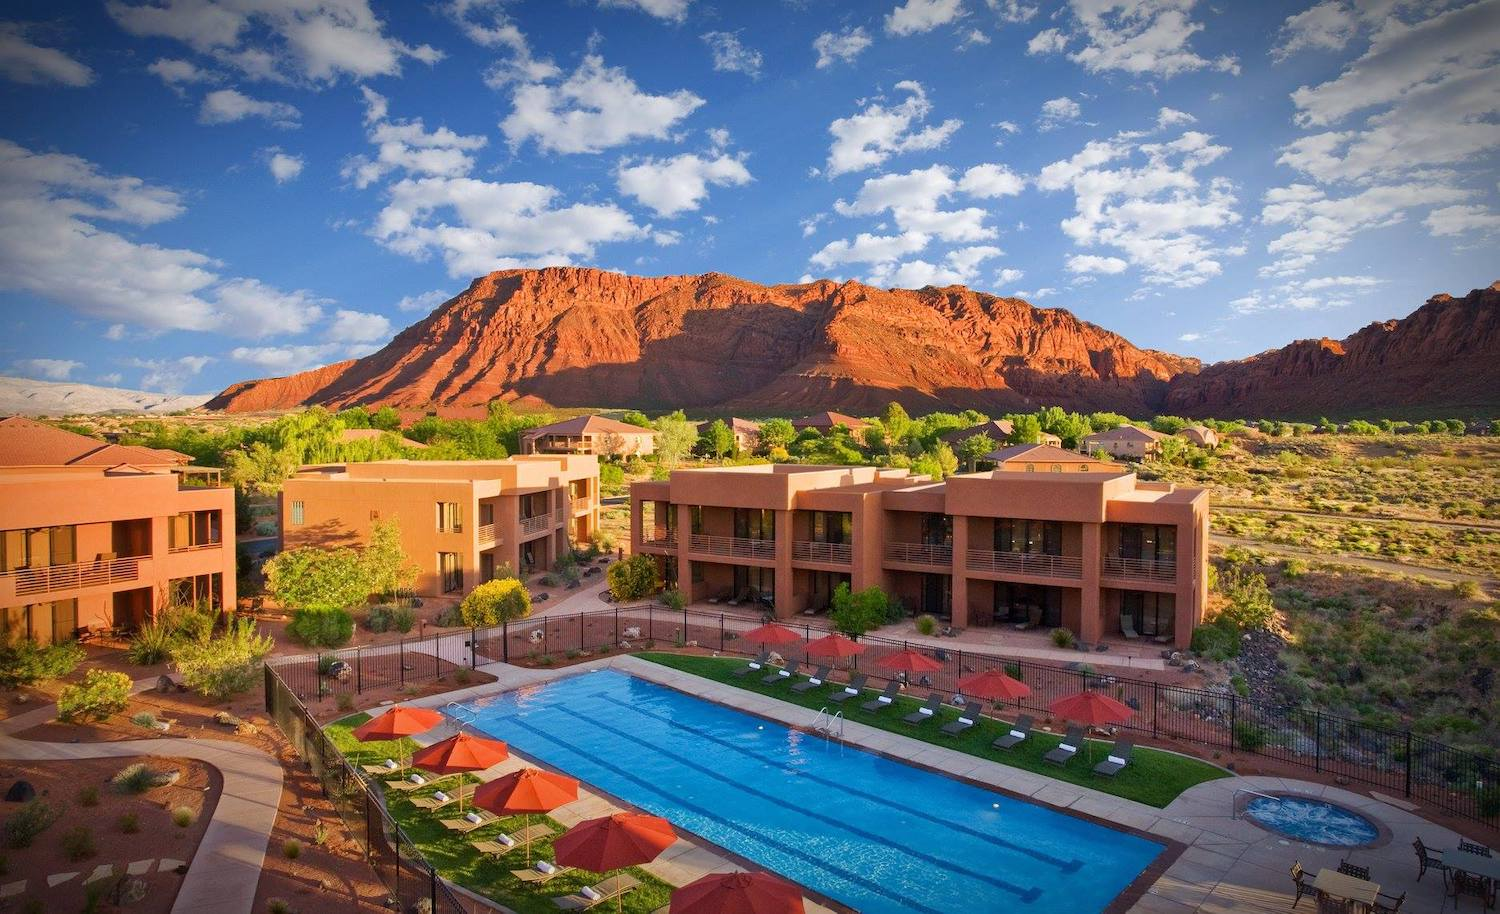 Couples Retreats In The USA - Red Mountain Resort in Utah